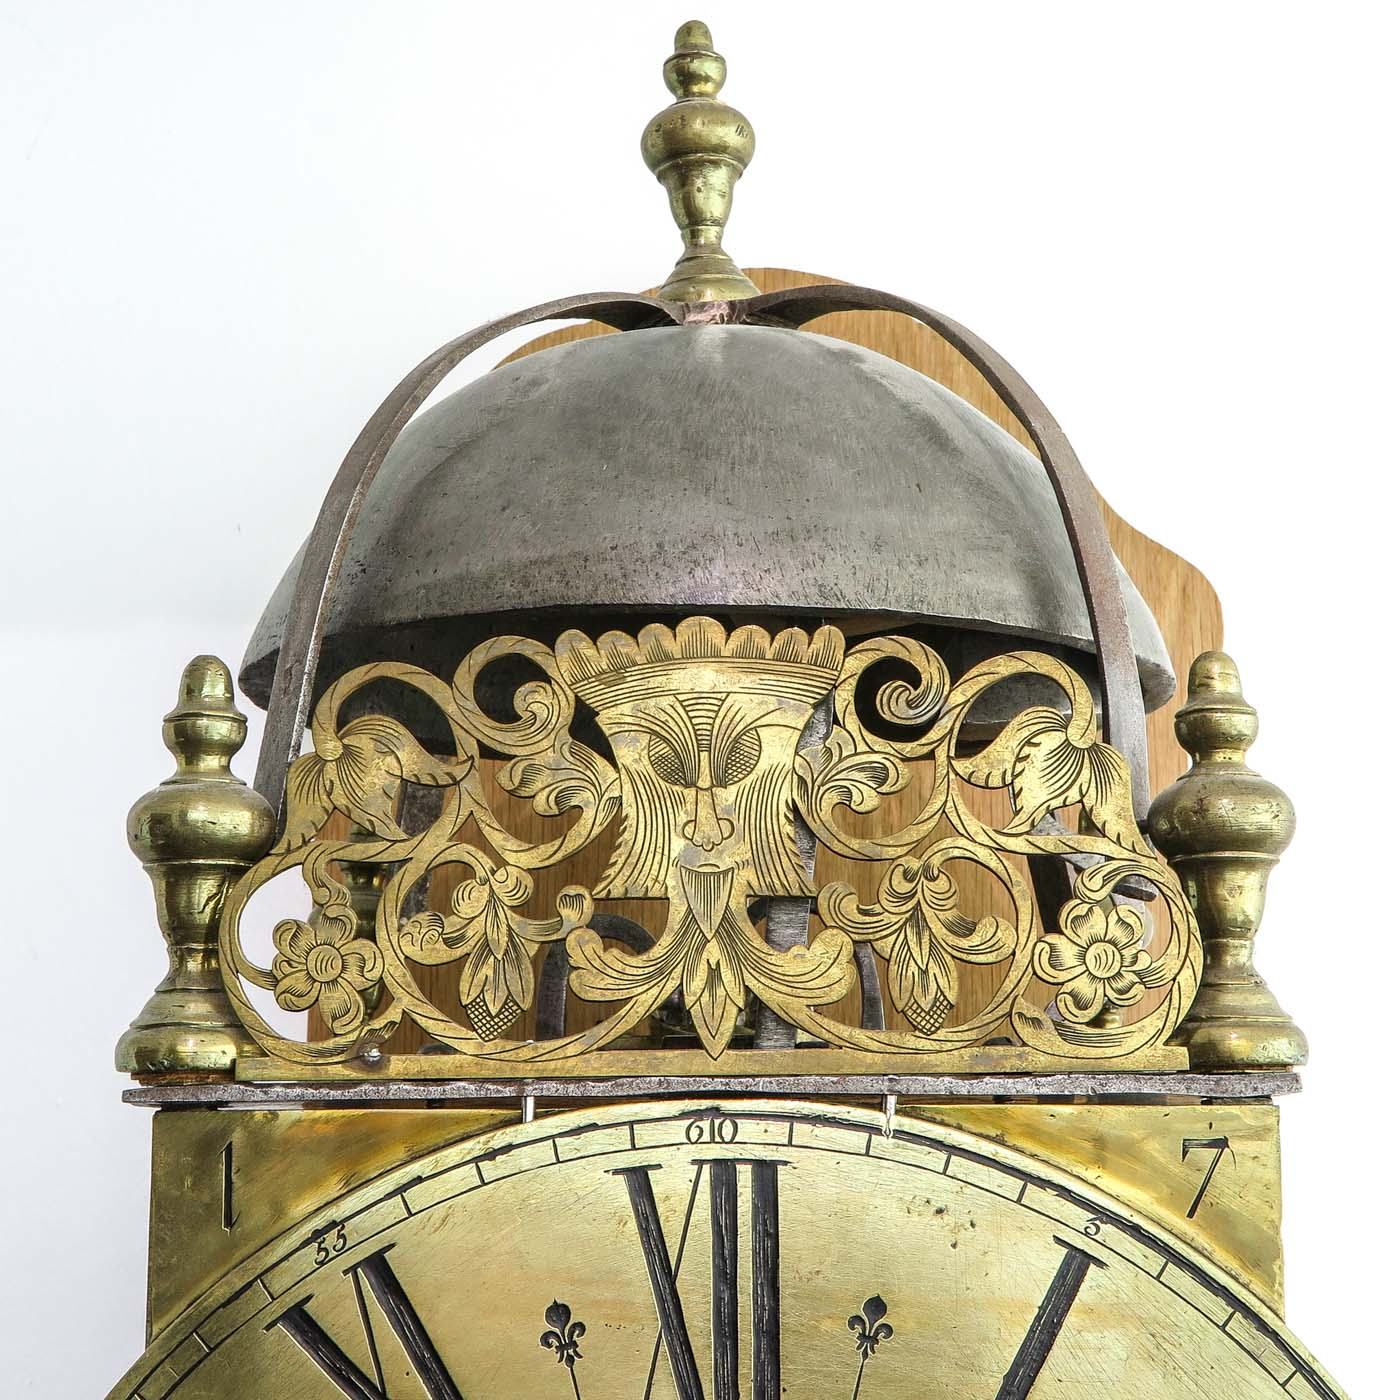 Lot 1074 - A Signed French Lantern clock